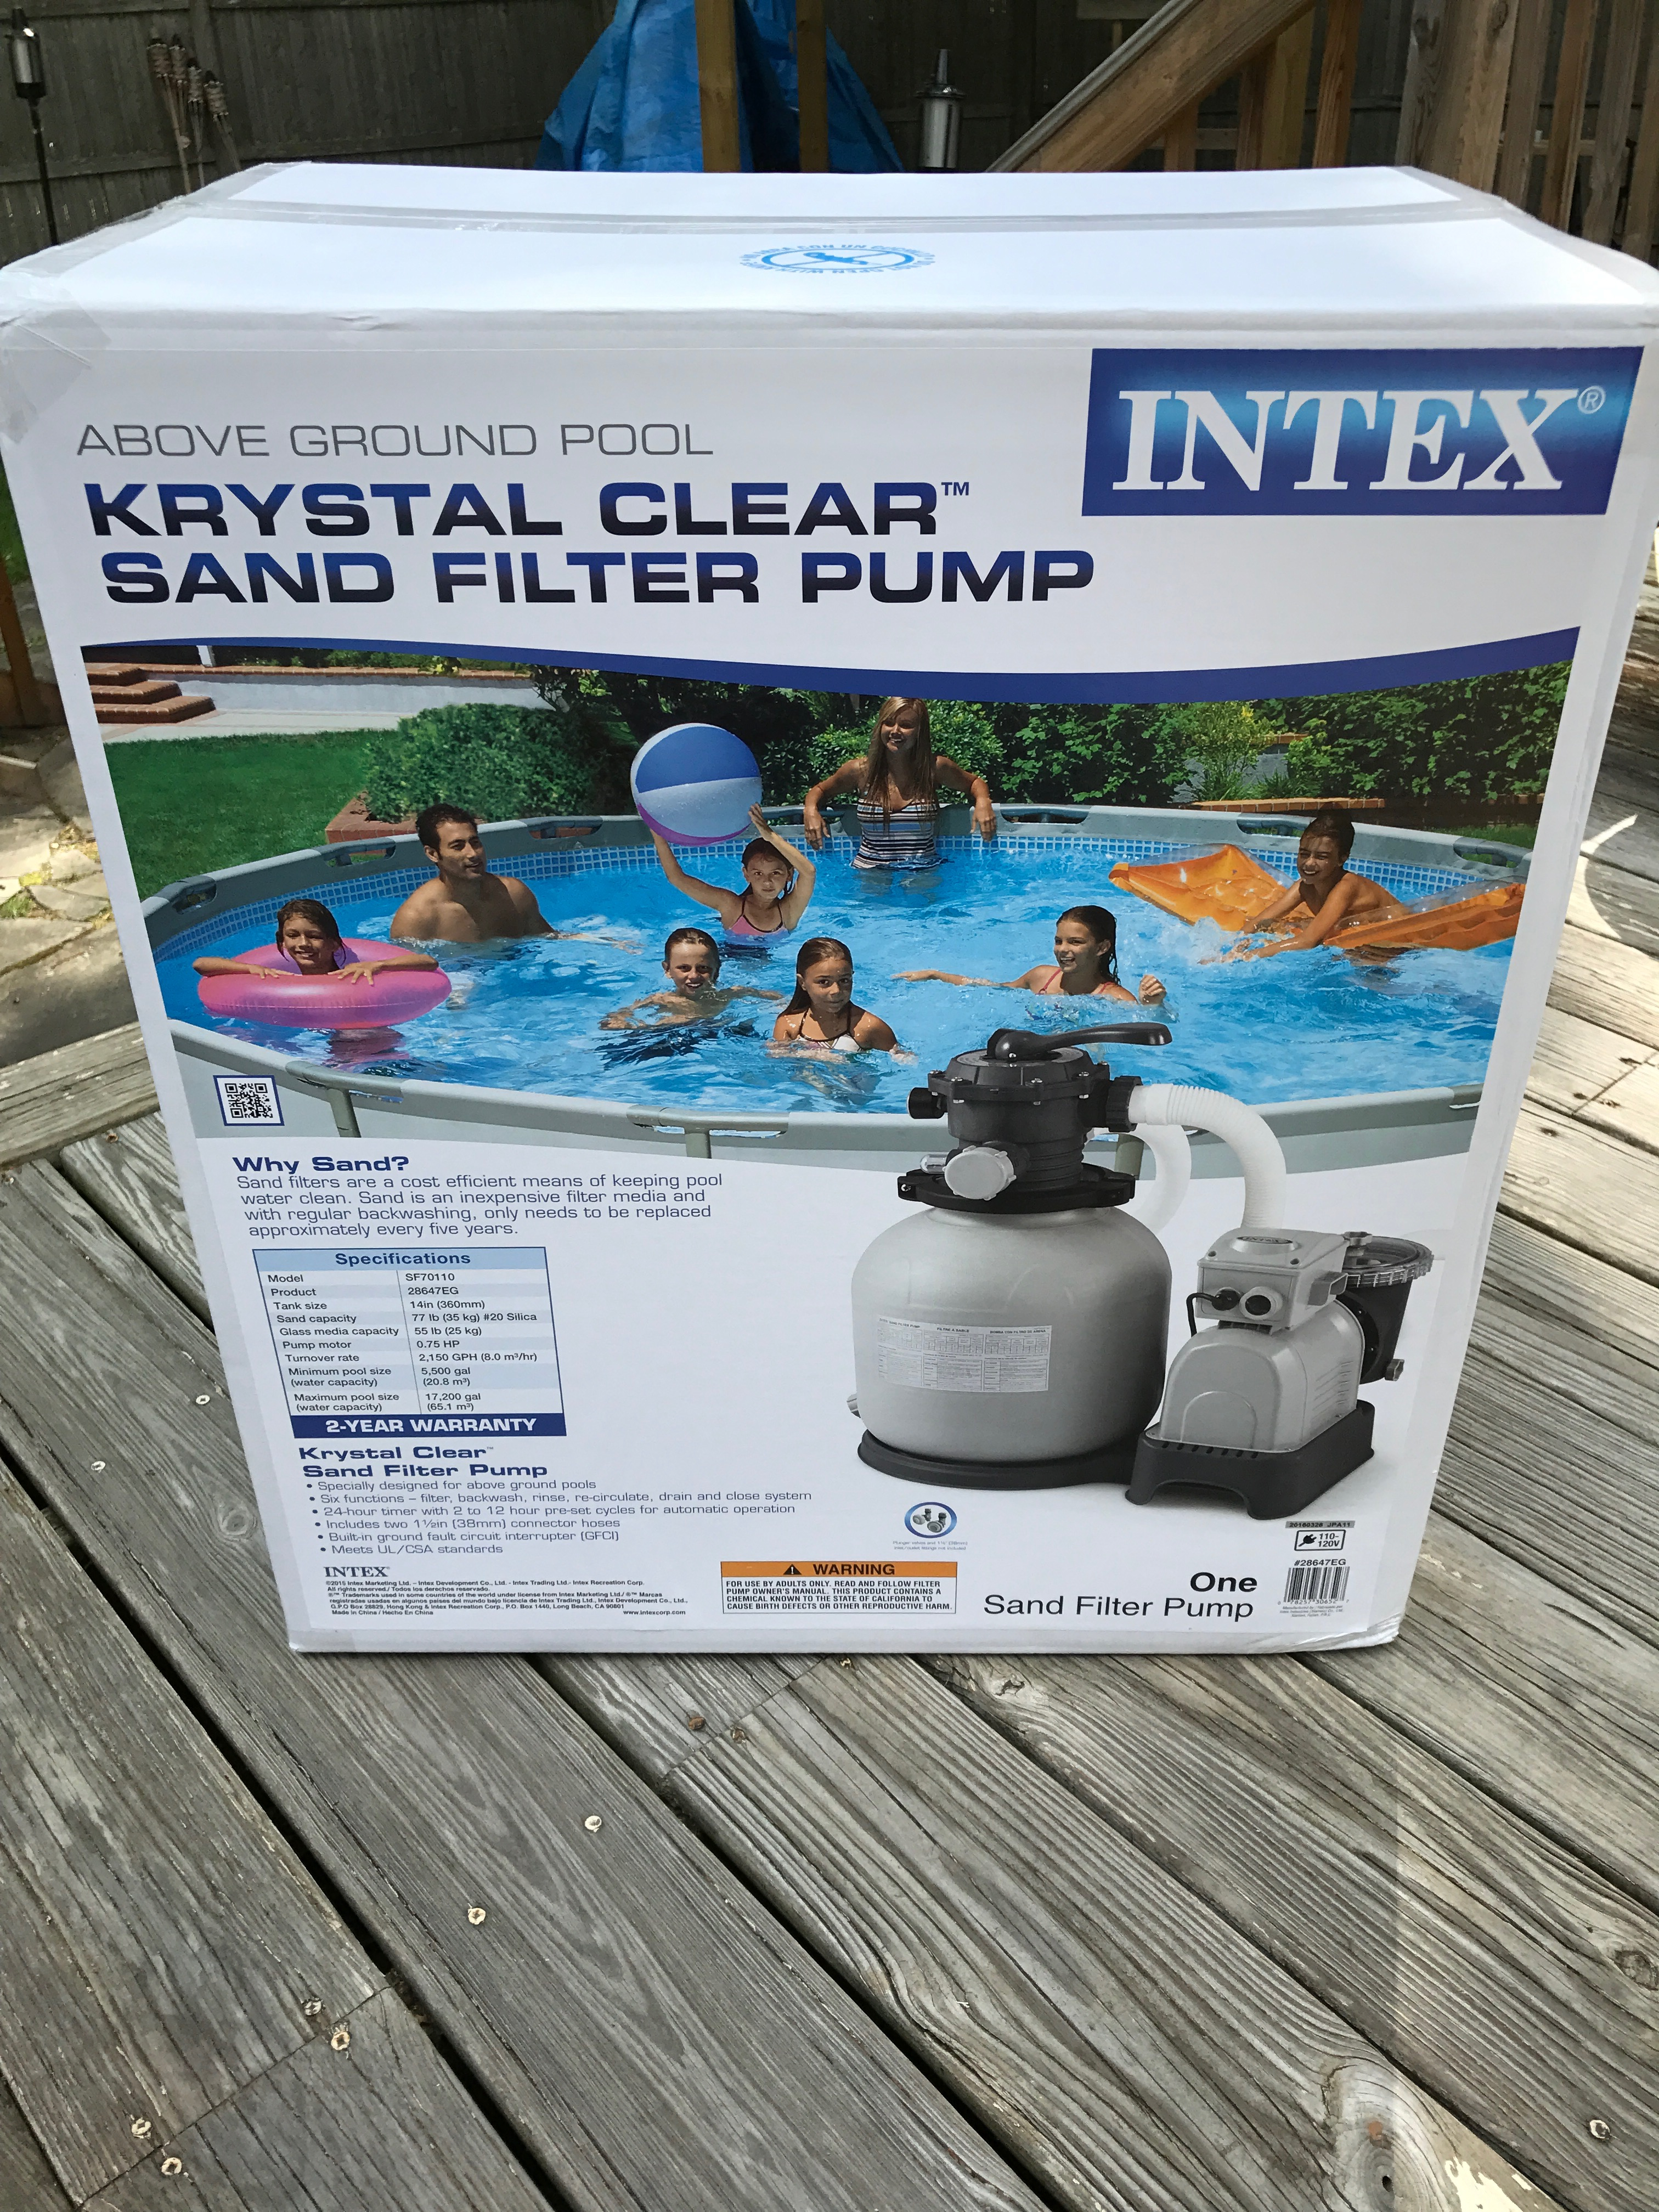 Intex Pool Pump Youtube Polygroup Summer Waves Pool Filter Upgrade To Intex Sand Filter 2800